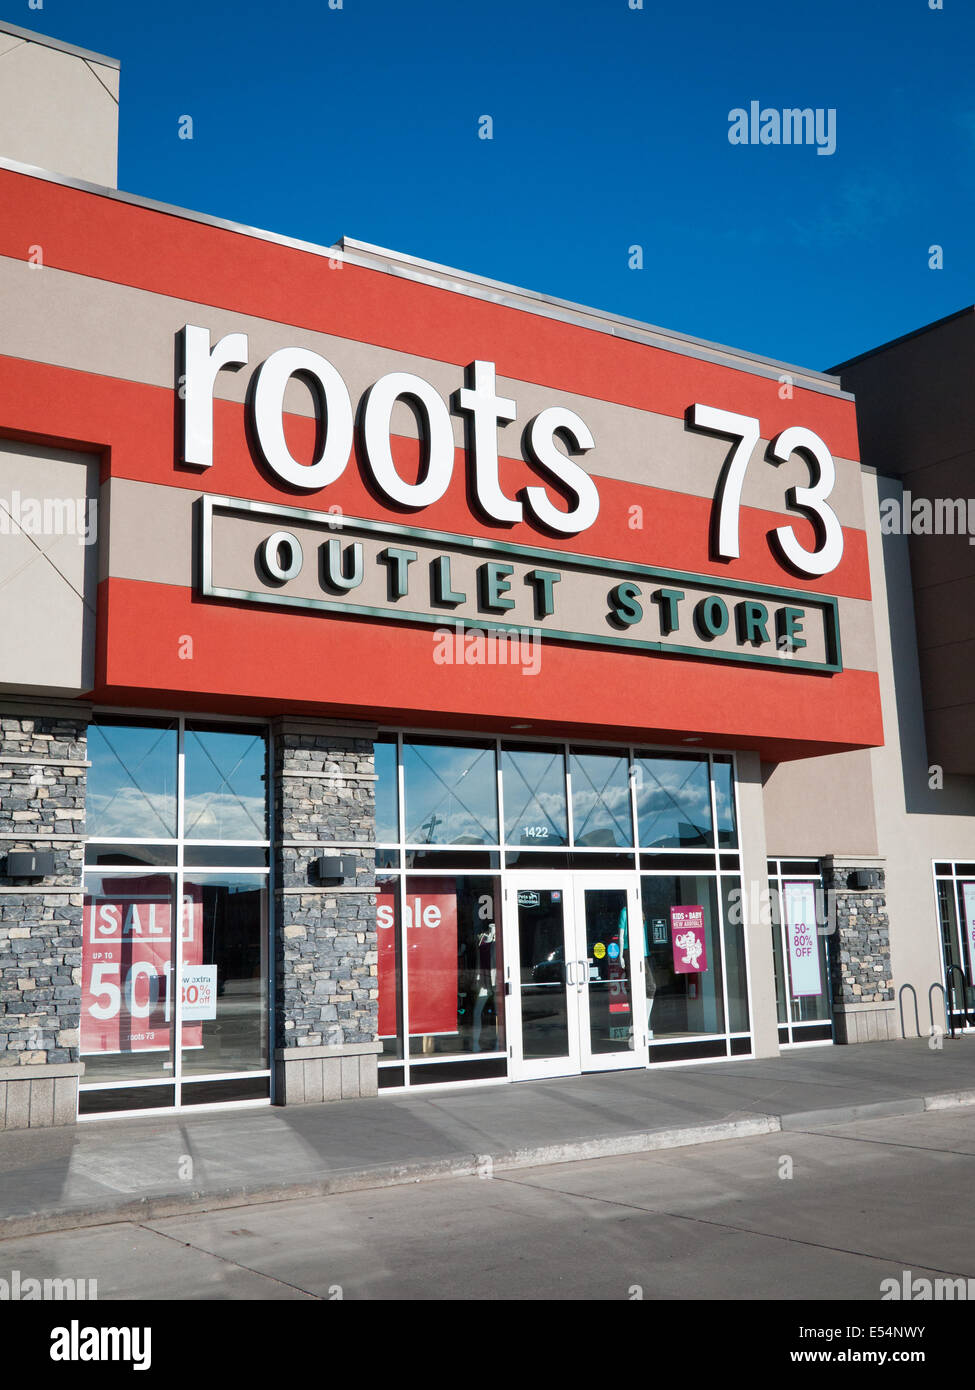 1 review of Canadian Outlet Store